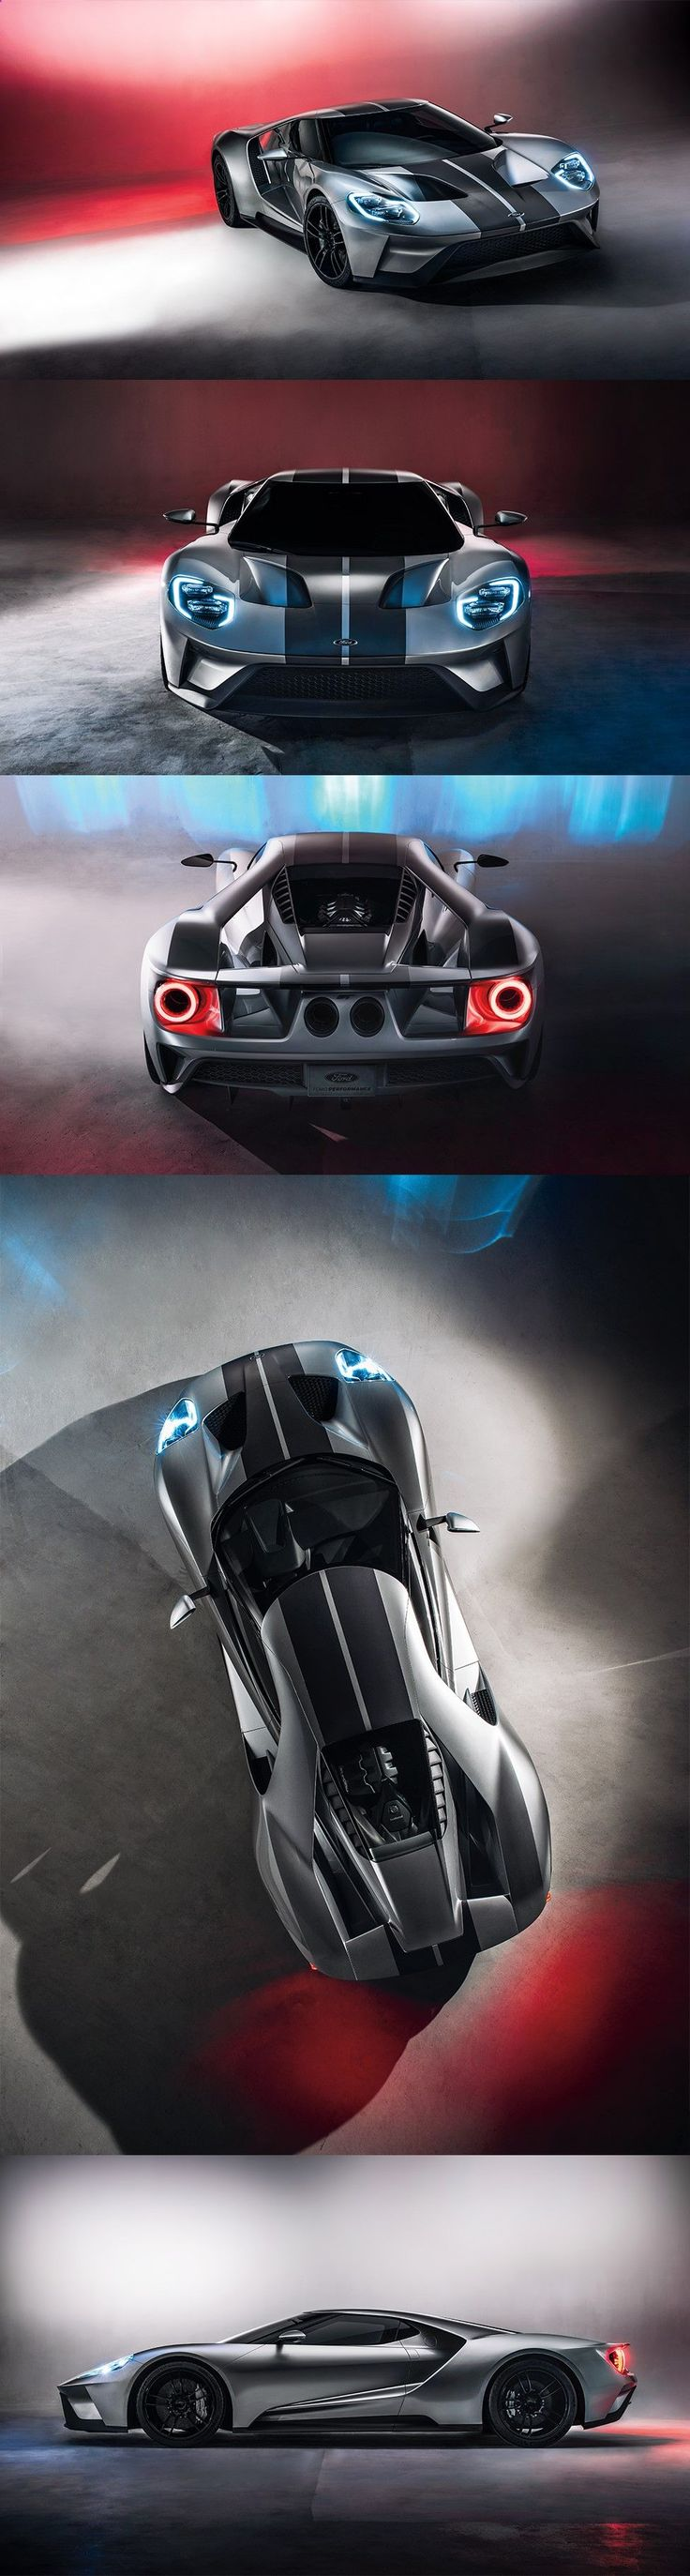 2016 Design of the Year: Ford GT. A monument of style, inside and out. #fordGT